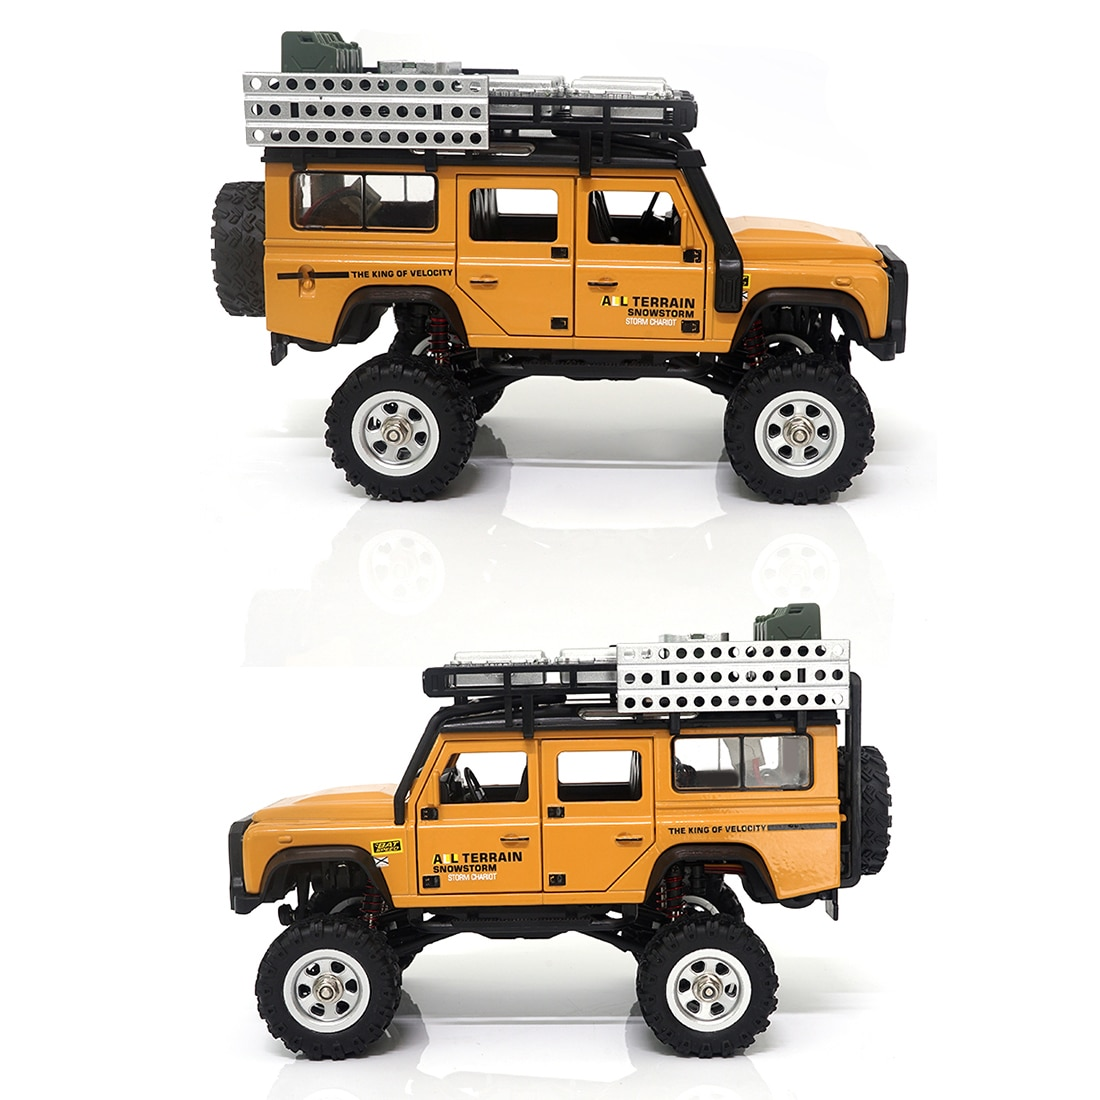 1/28 Scale RC Climbing Car 2.4G 4WD RC Electric Car Mini Alloy Off-road Climbing Car Model Toy with LED Car Lamp - RTR enlarge